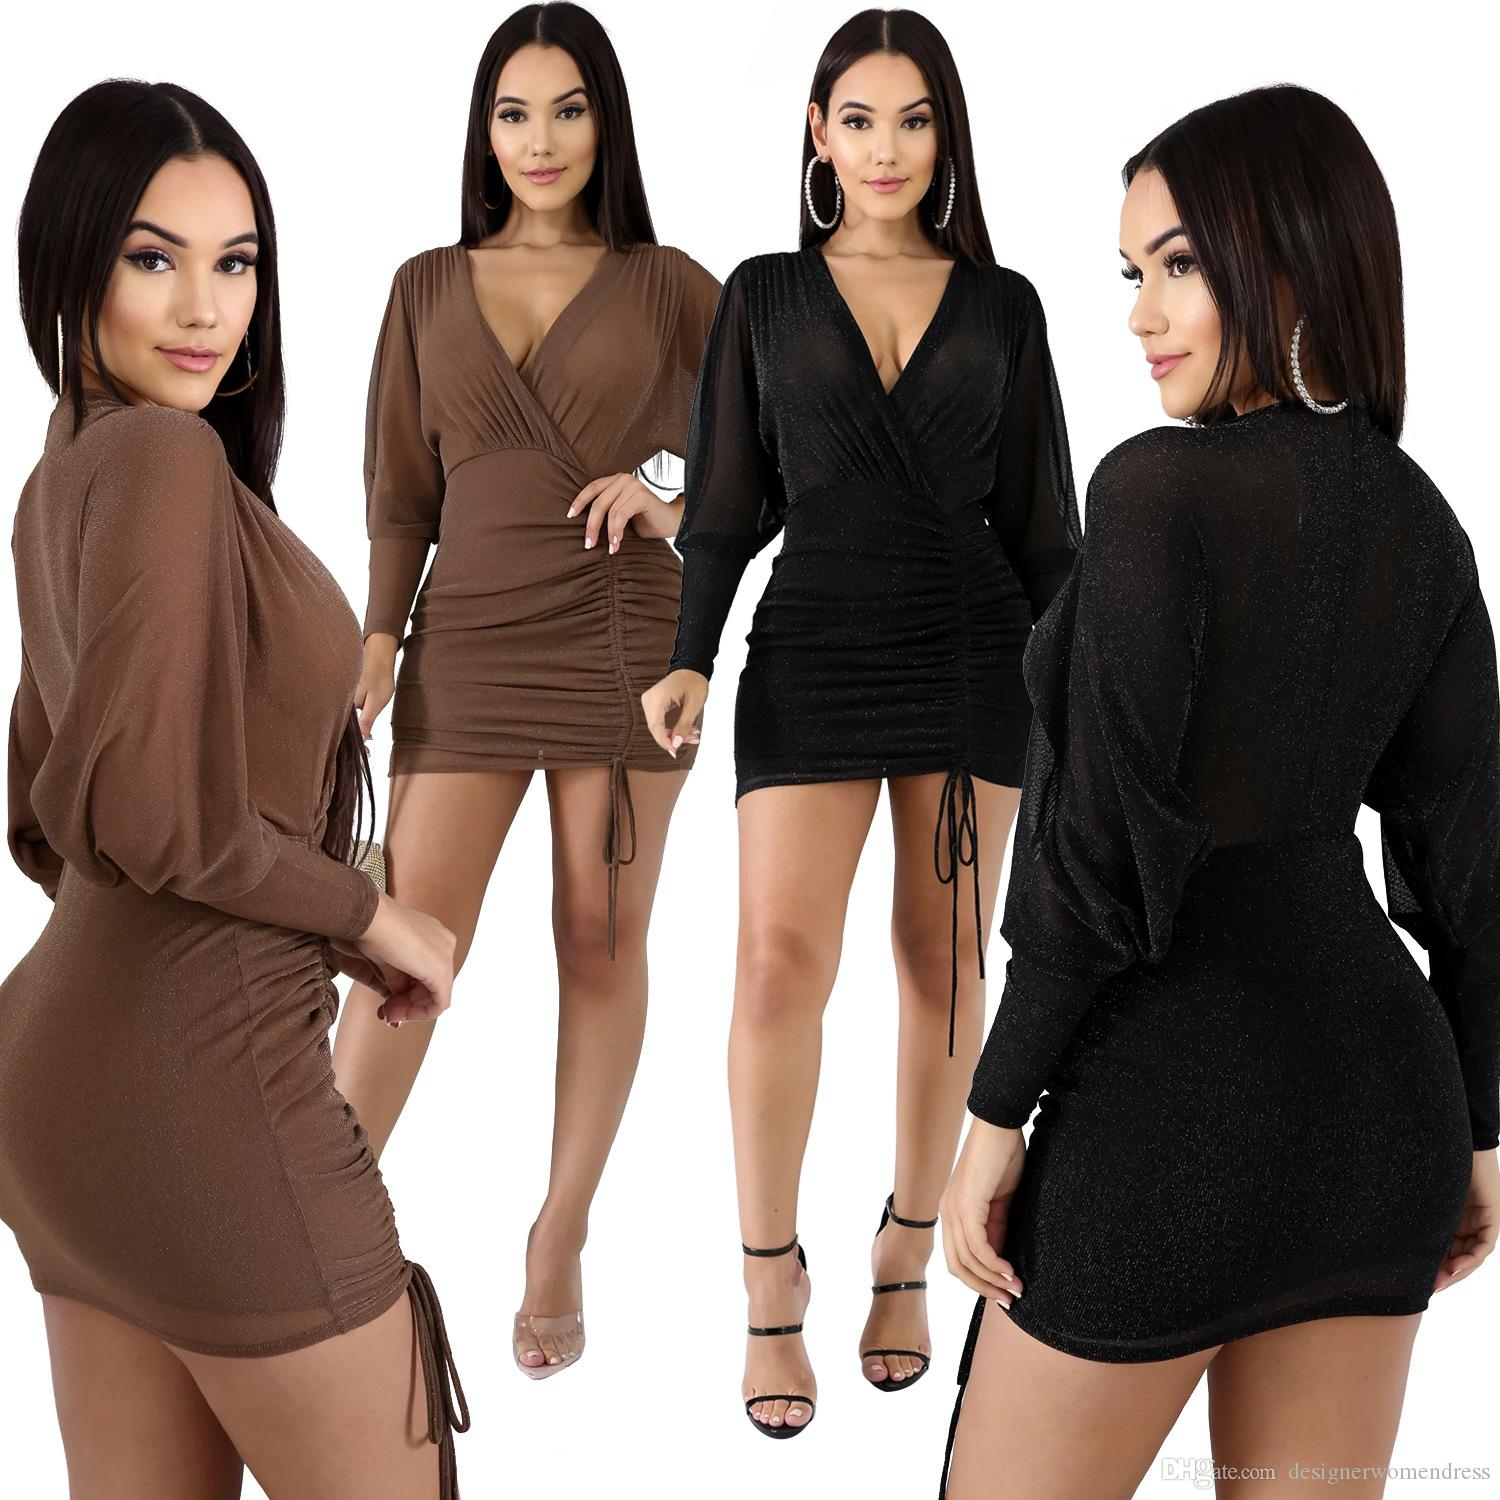 Women Designer Party Dresses Perspective Autumn Club Sexy Slim Long Sleeved Dark V-Neck Drawstring Bodycon Dresses Fashion Women Dresses